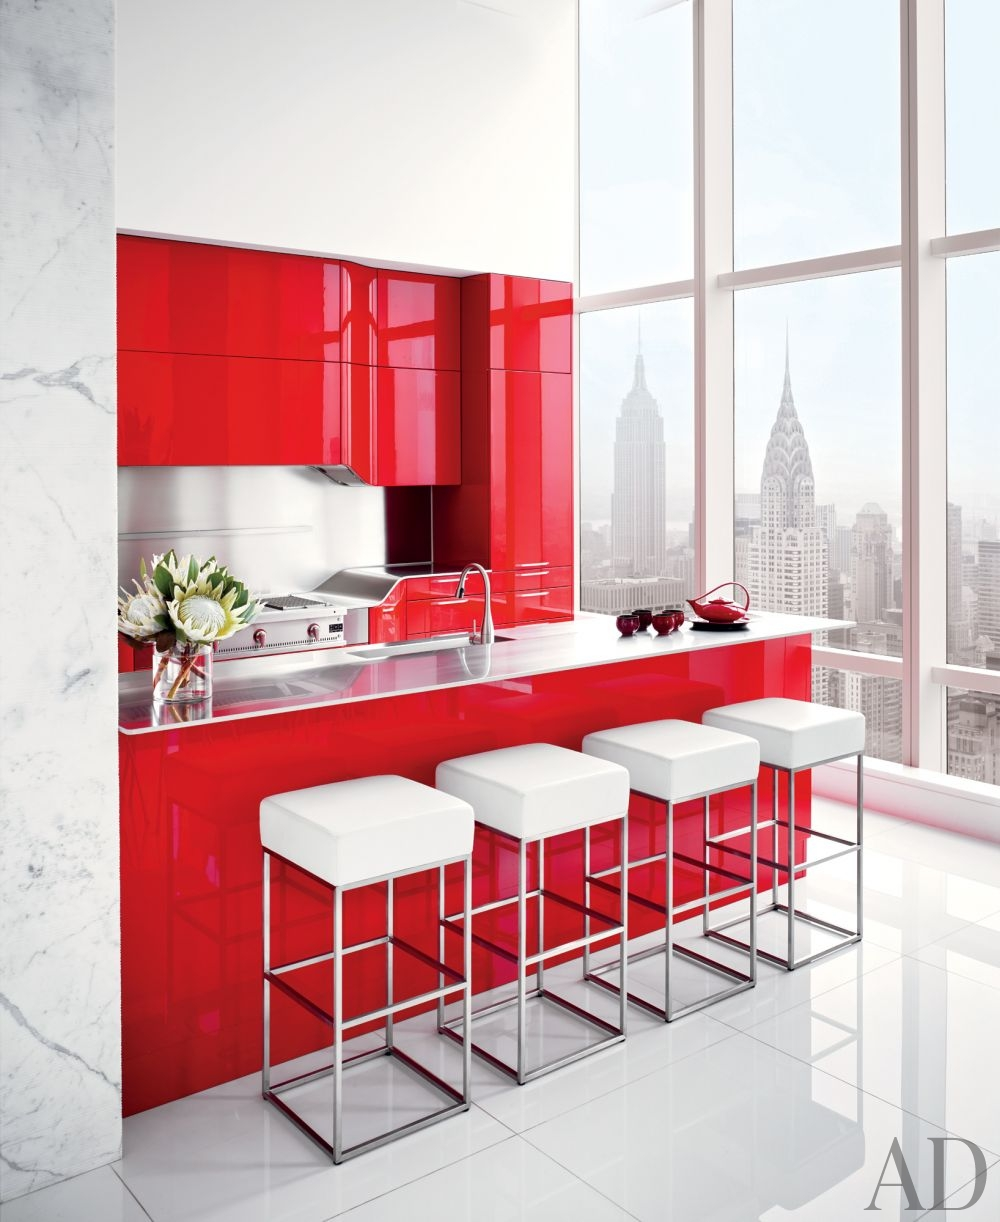 contemporary-kitchen-oda-architecture-new-york-new-york-201312_1000-watermarked